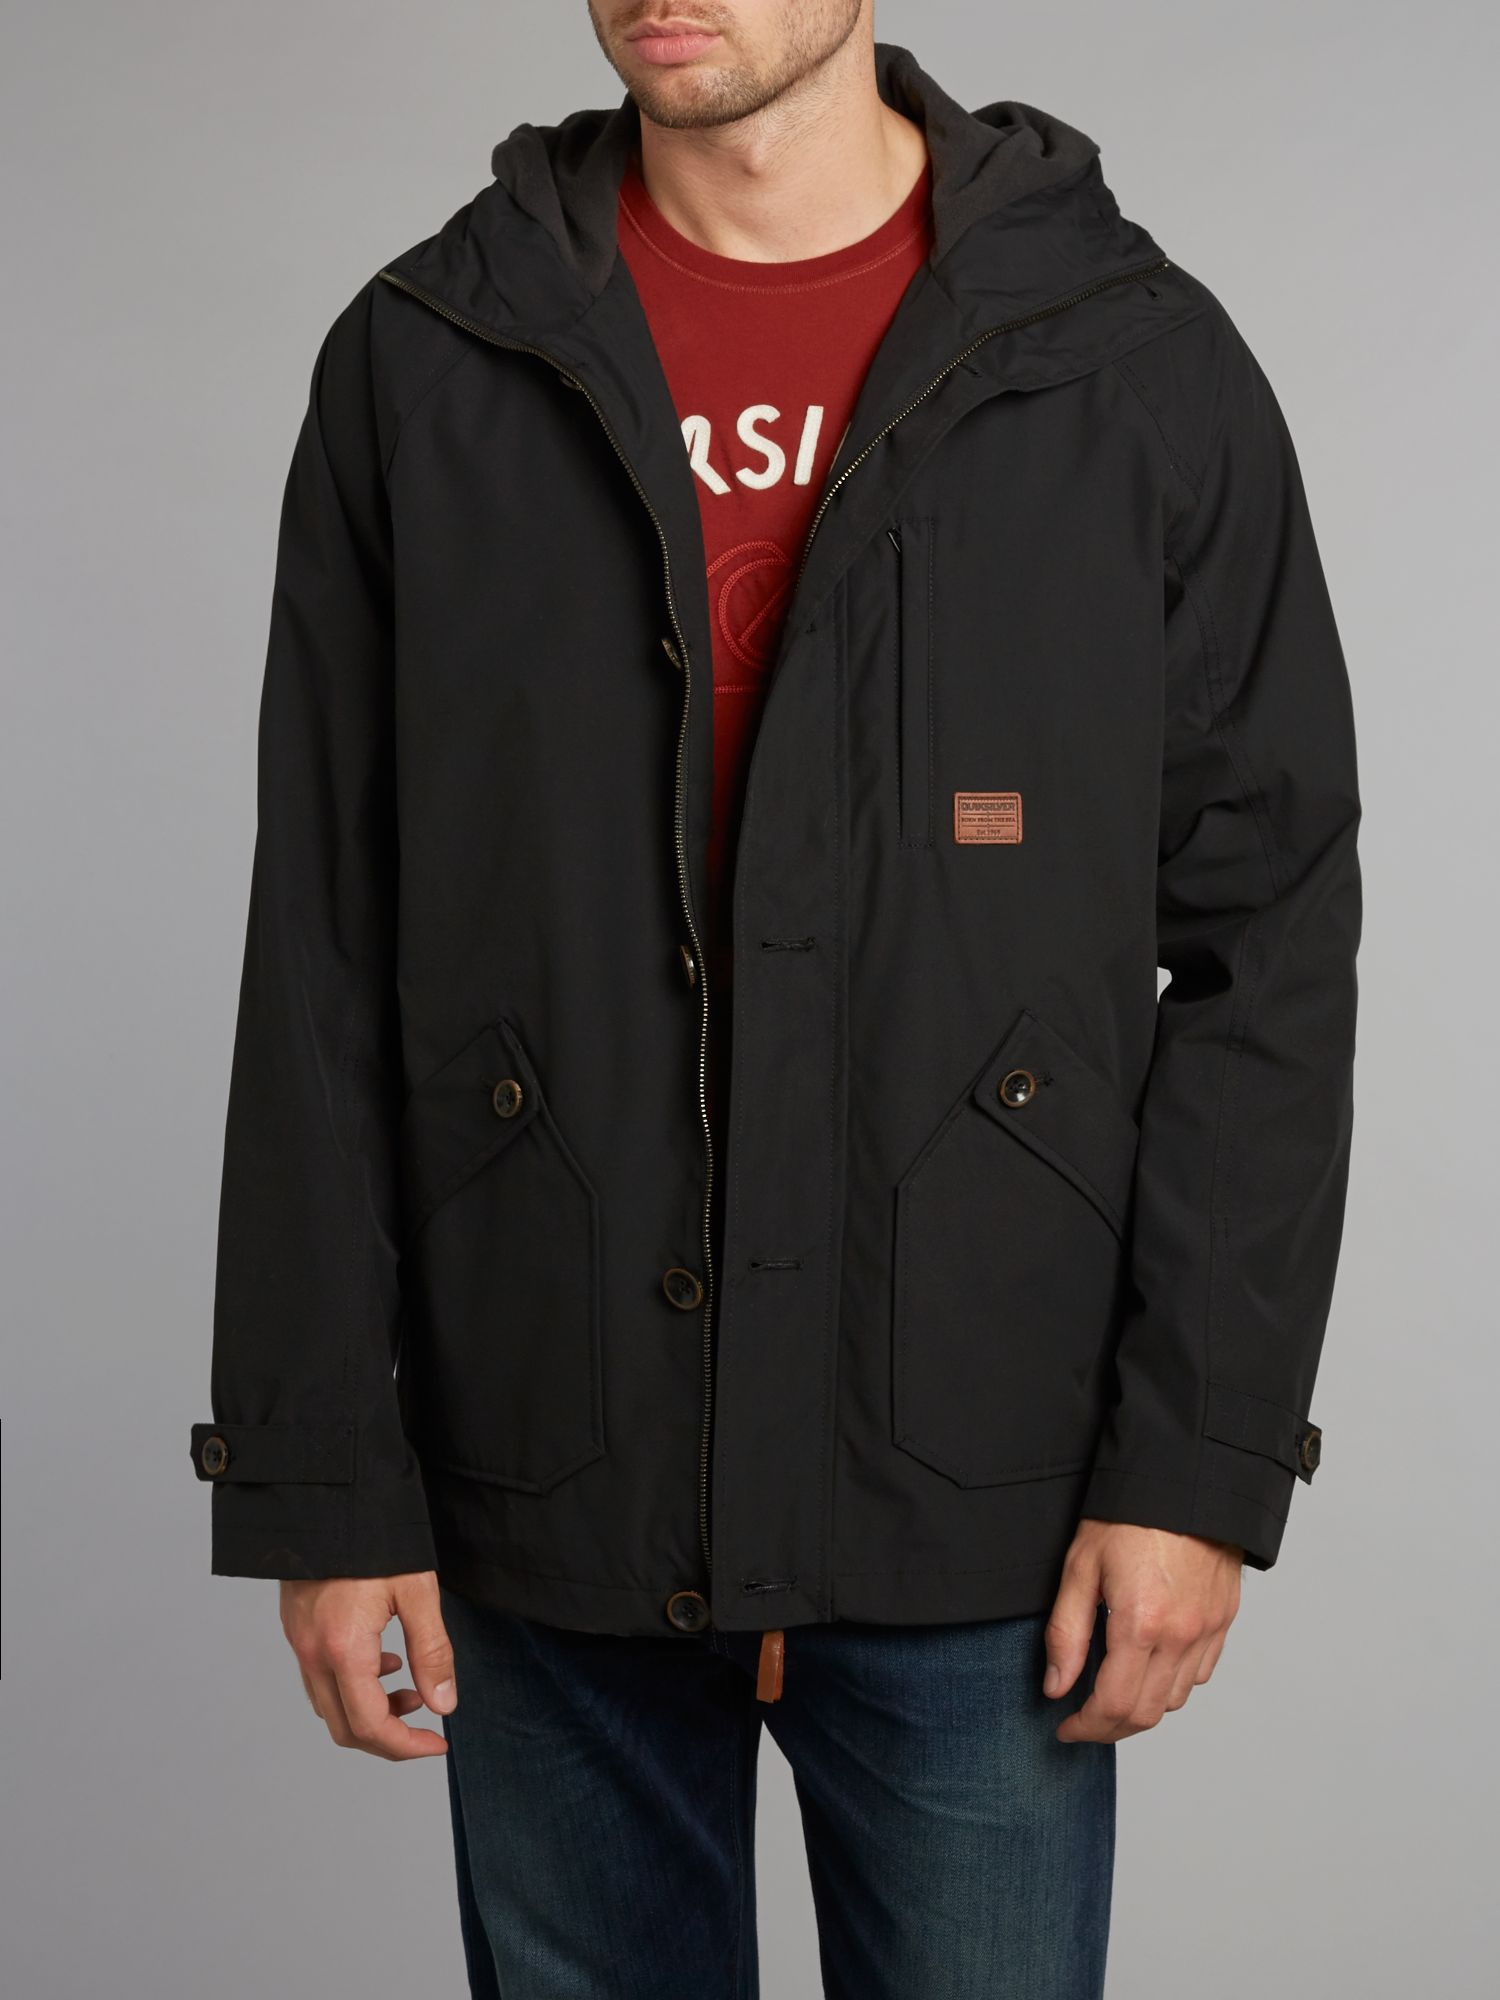 Edgewood hooded jacket